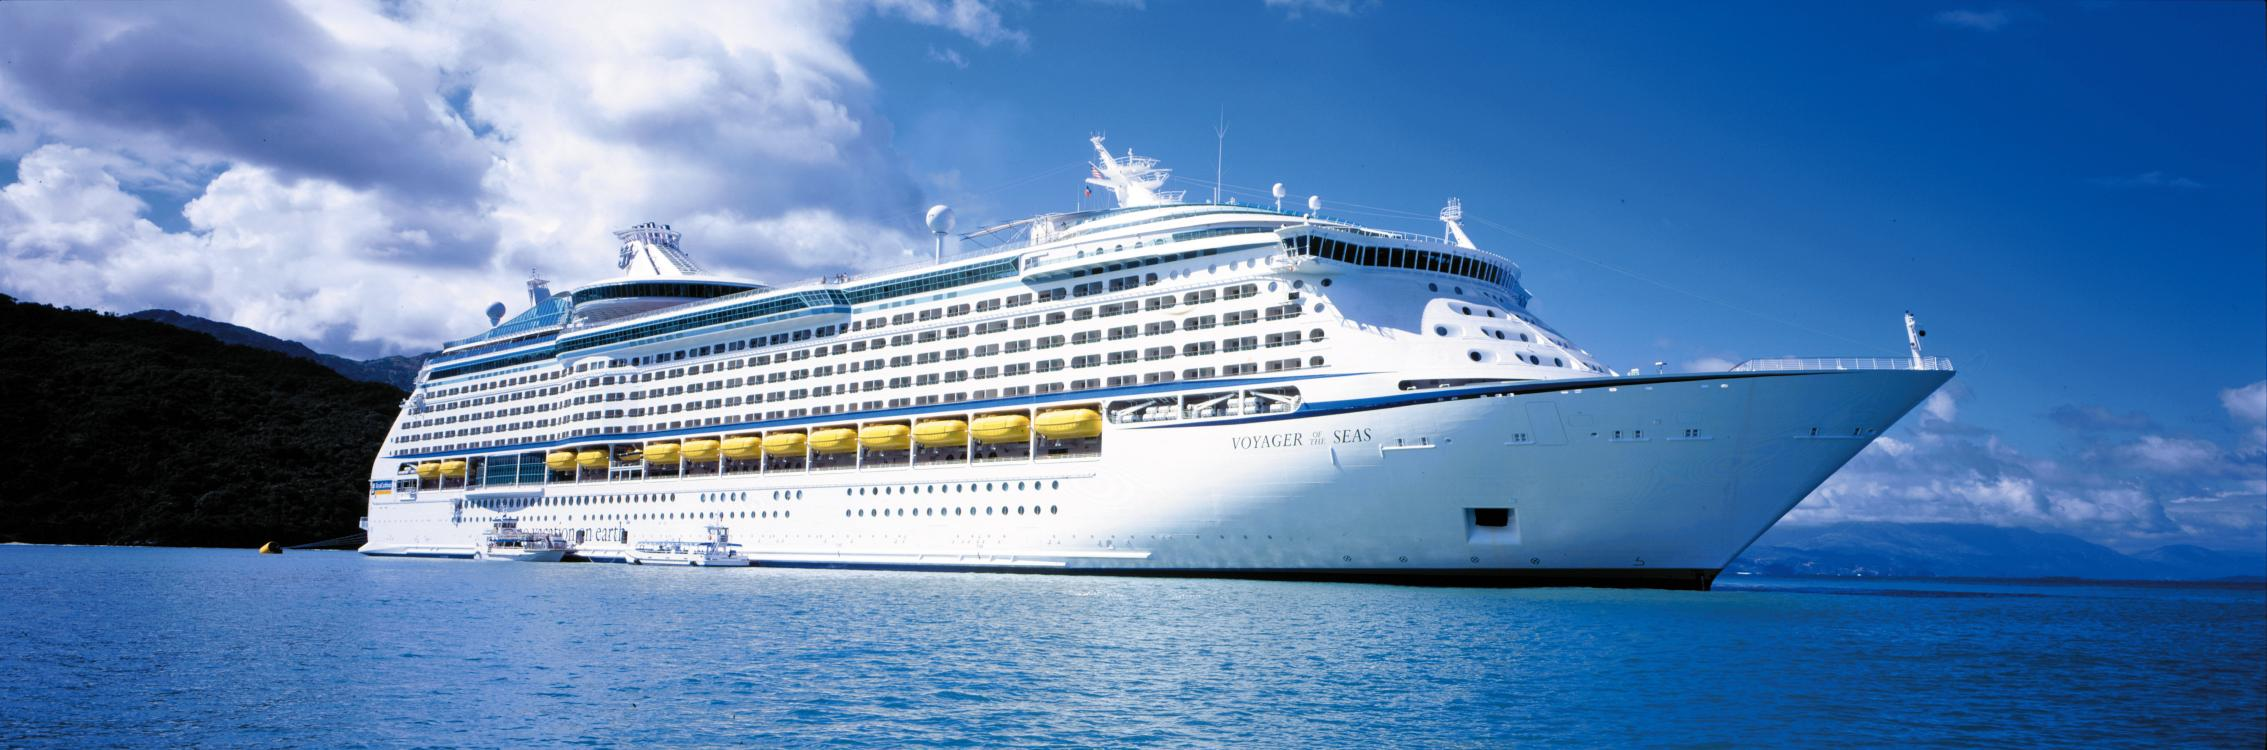 Royal Caribbean Oasis of the Seas 227.47 Kb